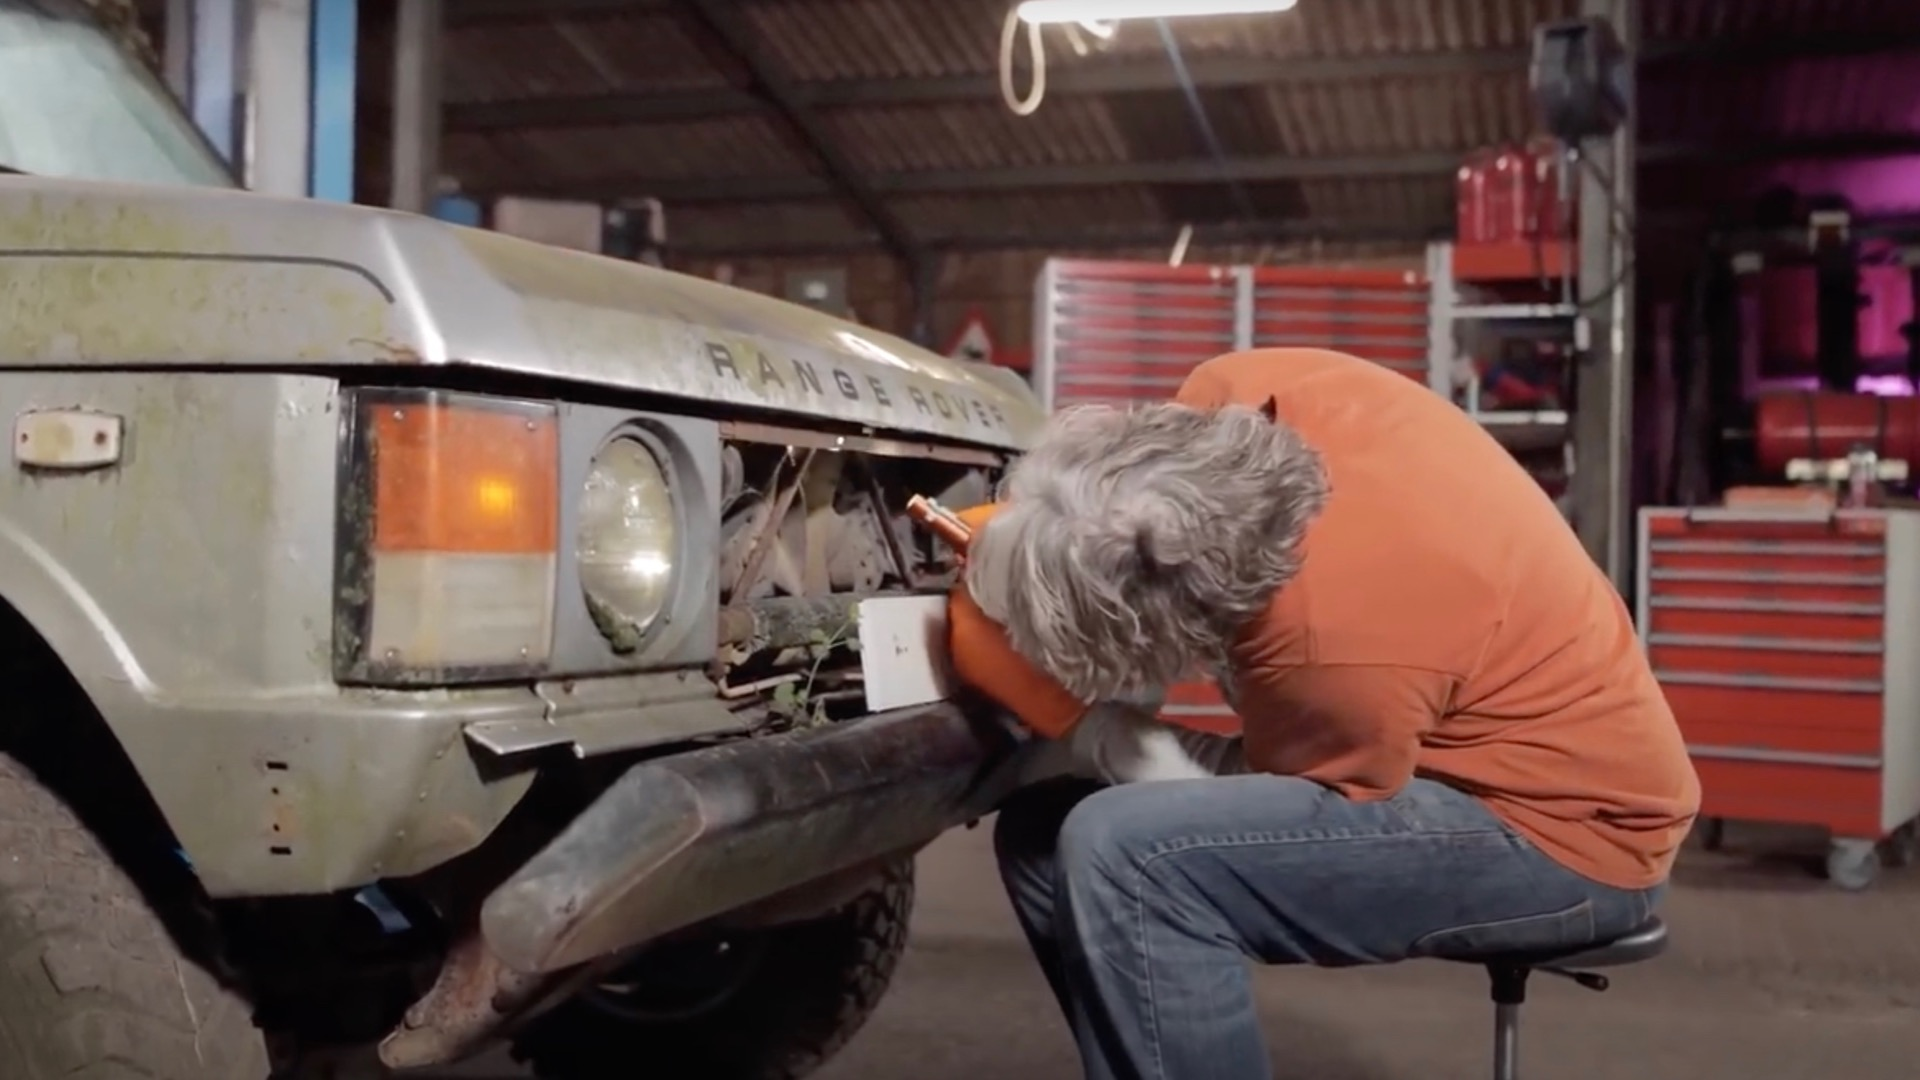 """Edd China begins work on a neglected 1982 Range Rover in """"Workshop Diaries"""" episode 2"""